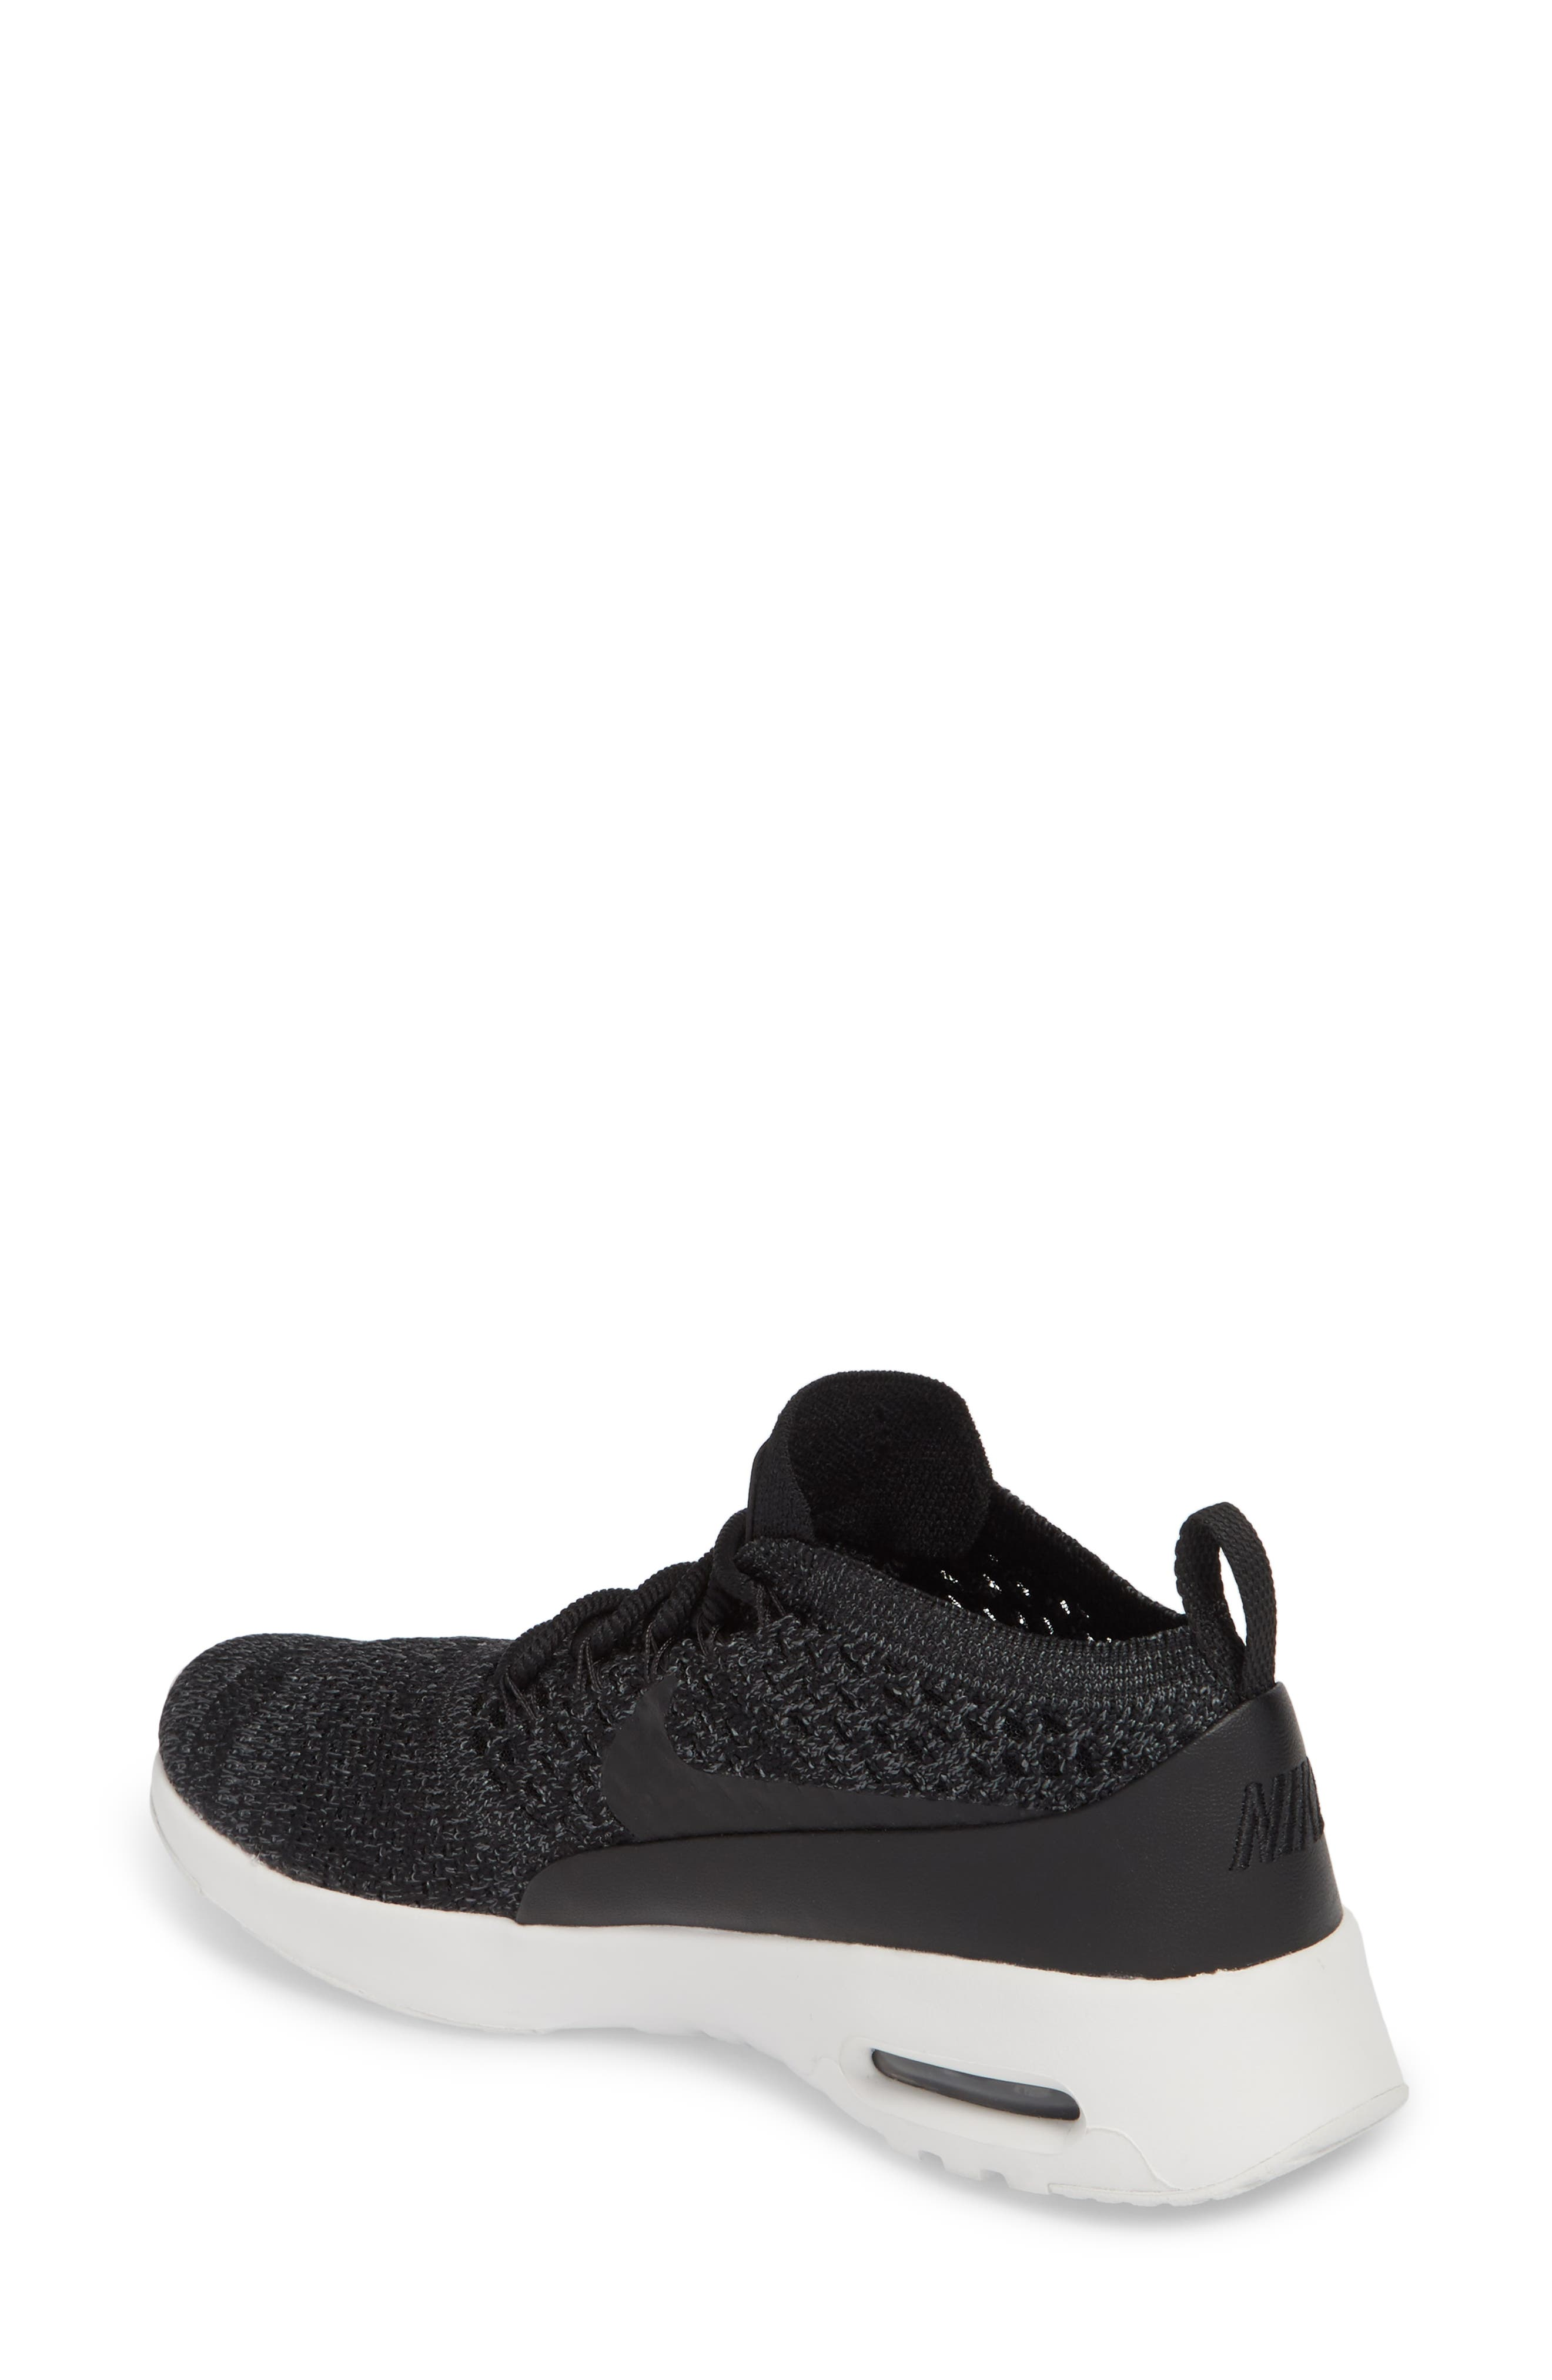 Air Max Thea Ultra Flyknit Sneaker,                             Alternate thumbnail 13, color,